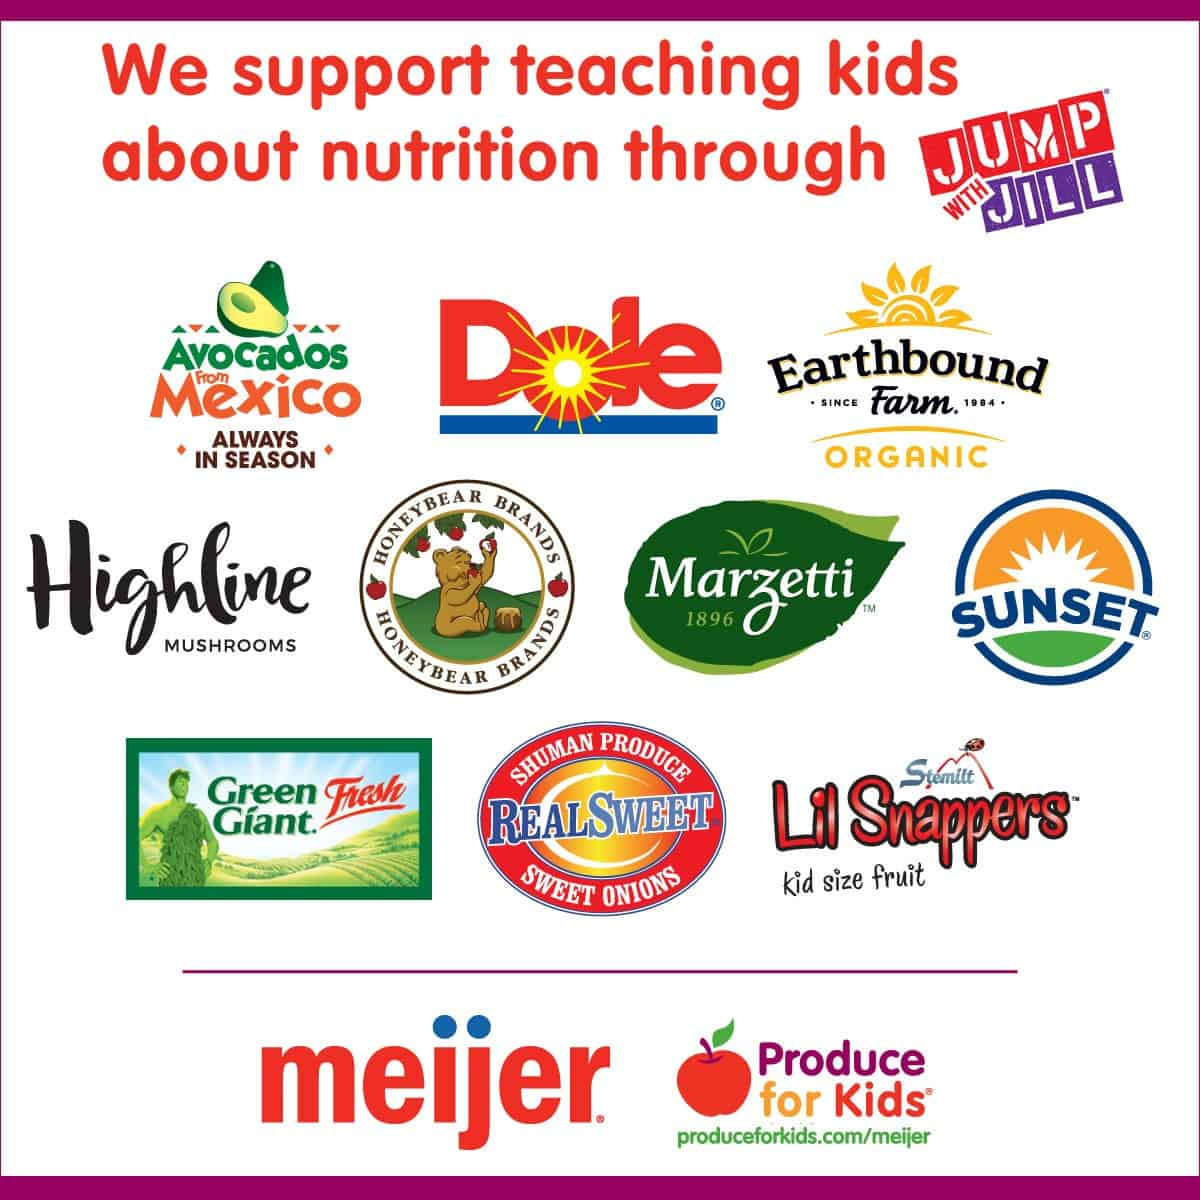 help support nutrition education in schools with meijer produce